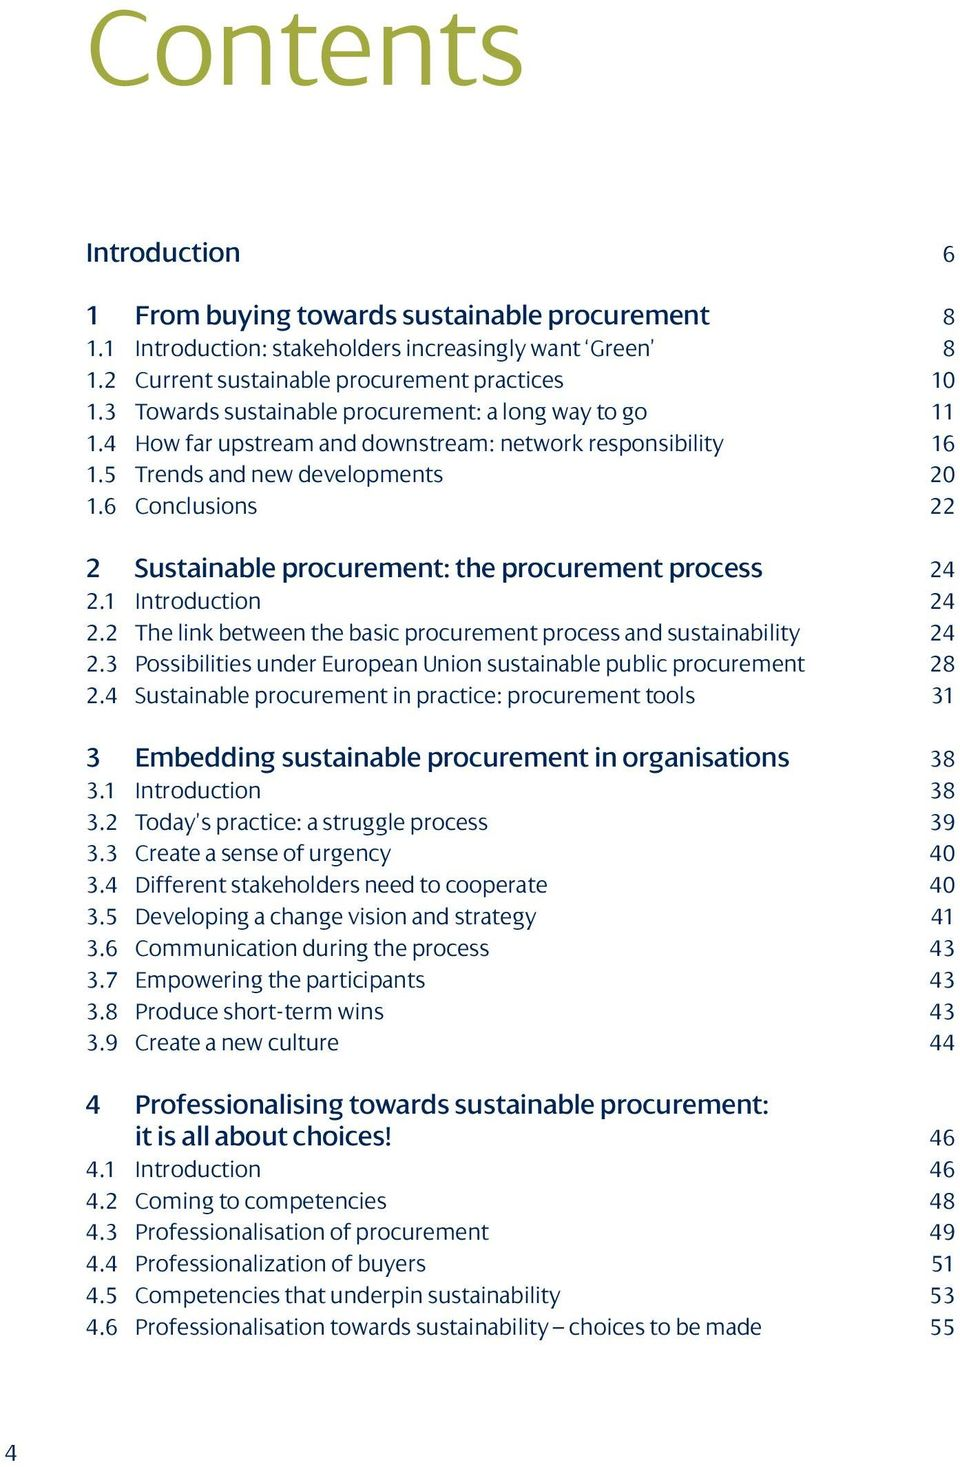 6 Conclusions 2 2 Sustainable procurement: the procurement process 4 2.1 Introduction 4 2.2 The link between the basic procurement process and sustainability 4 2.